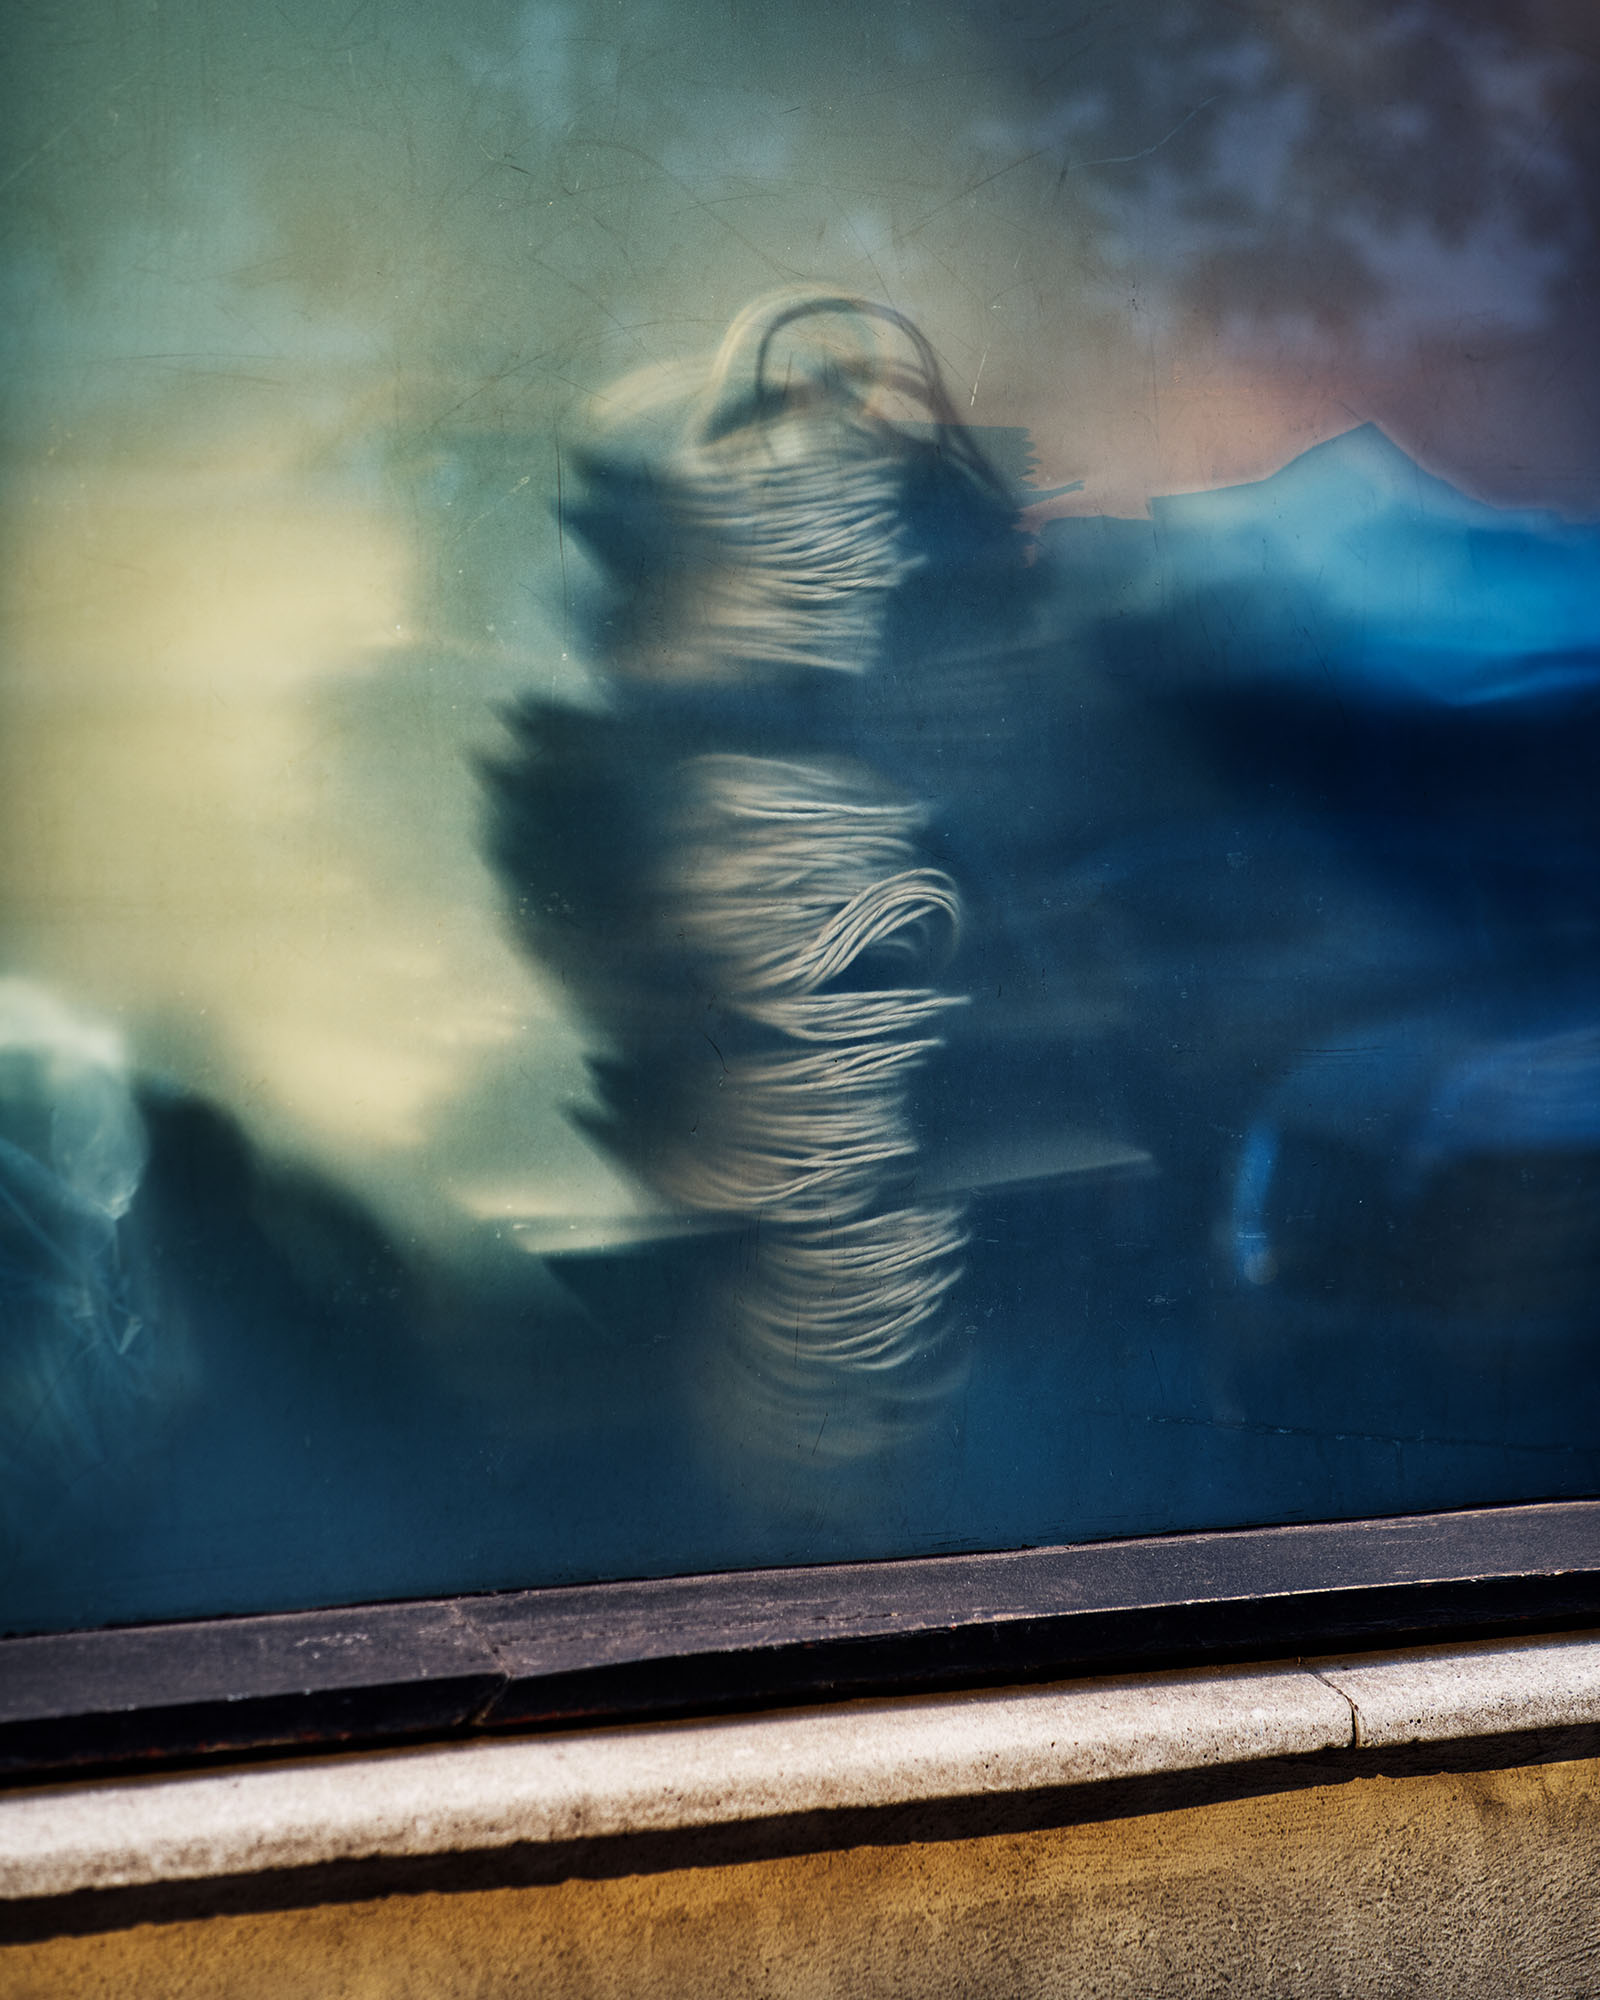 Thomas Prior captures moments of fleeting spectacle and impossible beauty